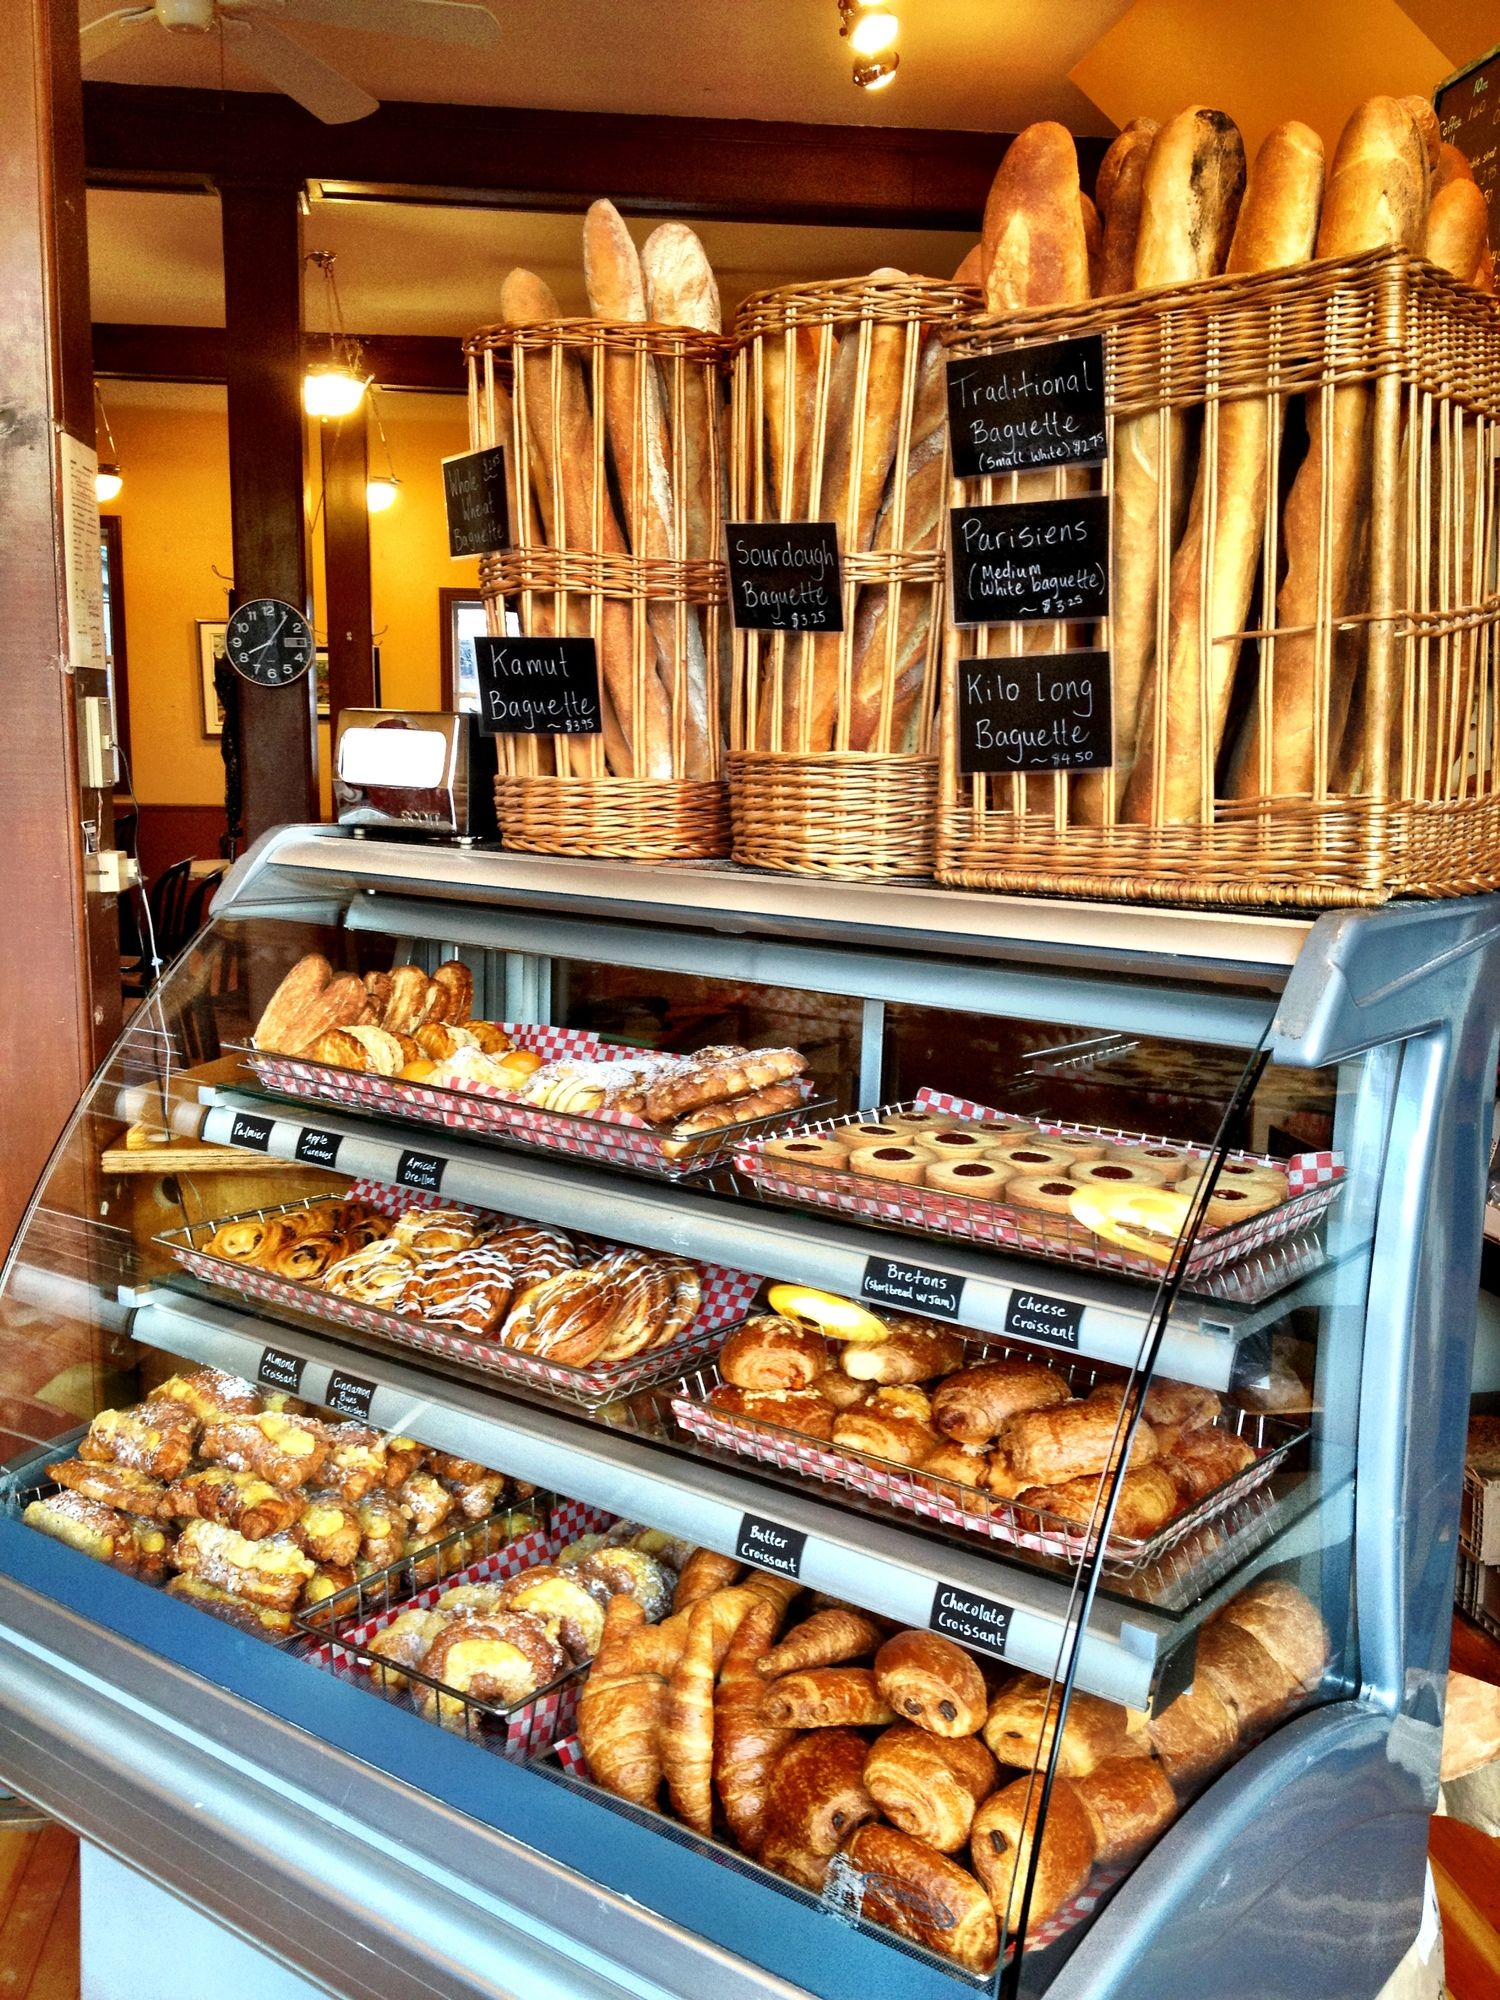 Boulangerie Julien Highly Recommended Bakery For Pastries Try The 42 Rue Des Petits Champs Location Near Th Bakery Shop Design Bread Shop Diy Bakery Display